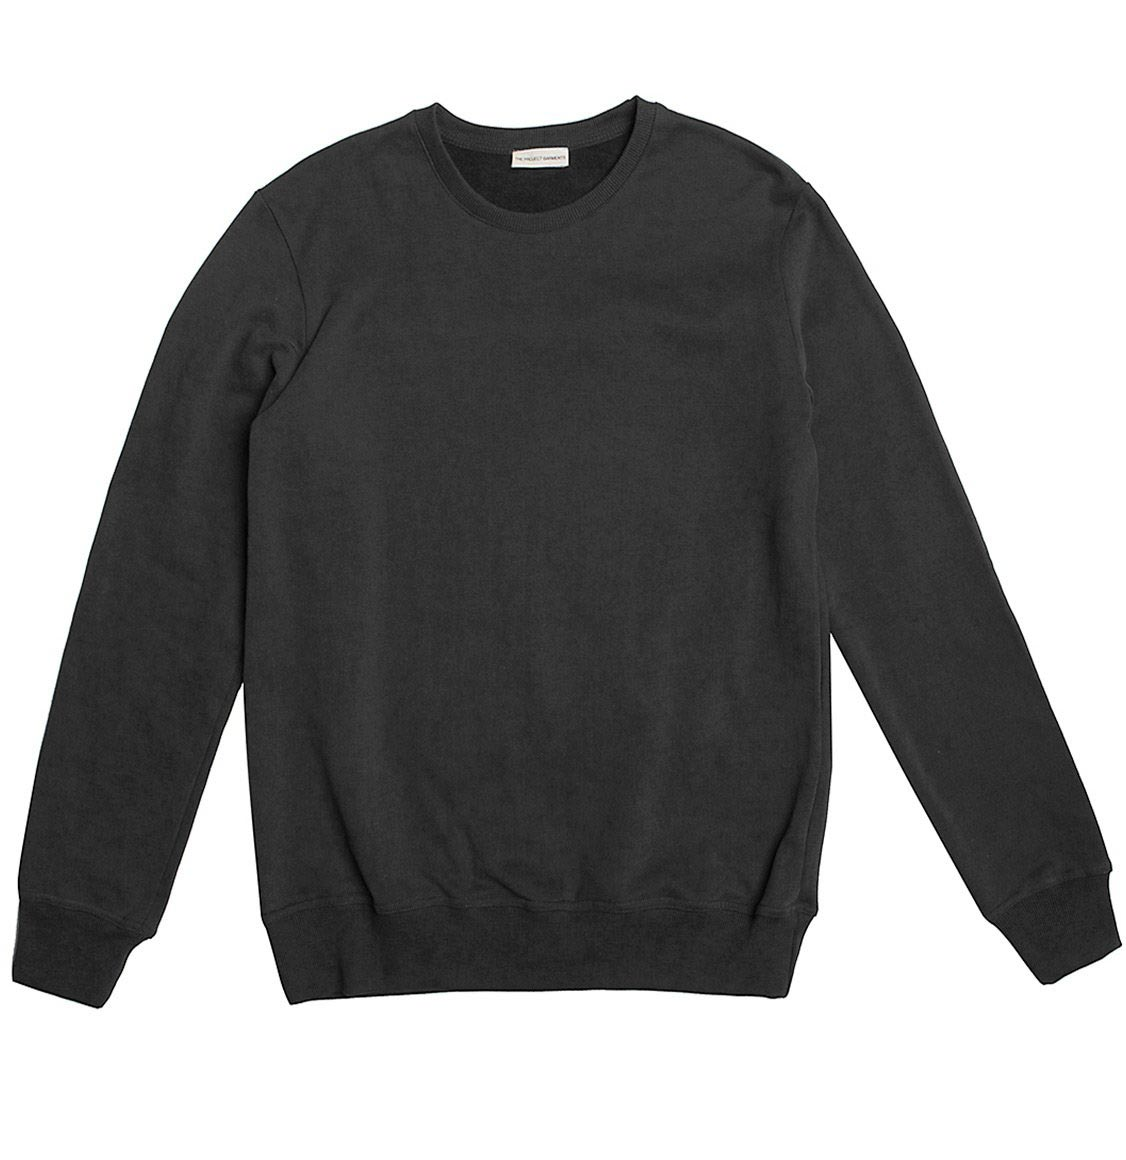 Crew Neck Sweatshirt Charcoal Grey